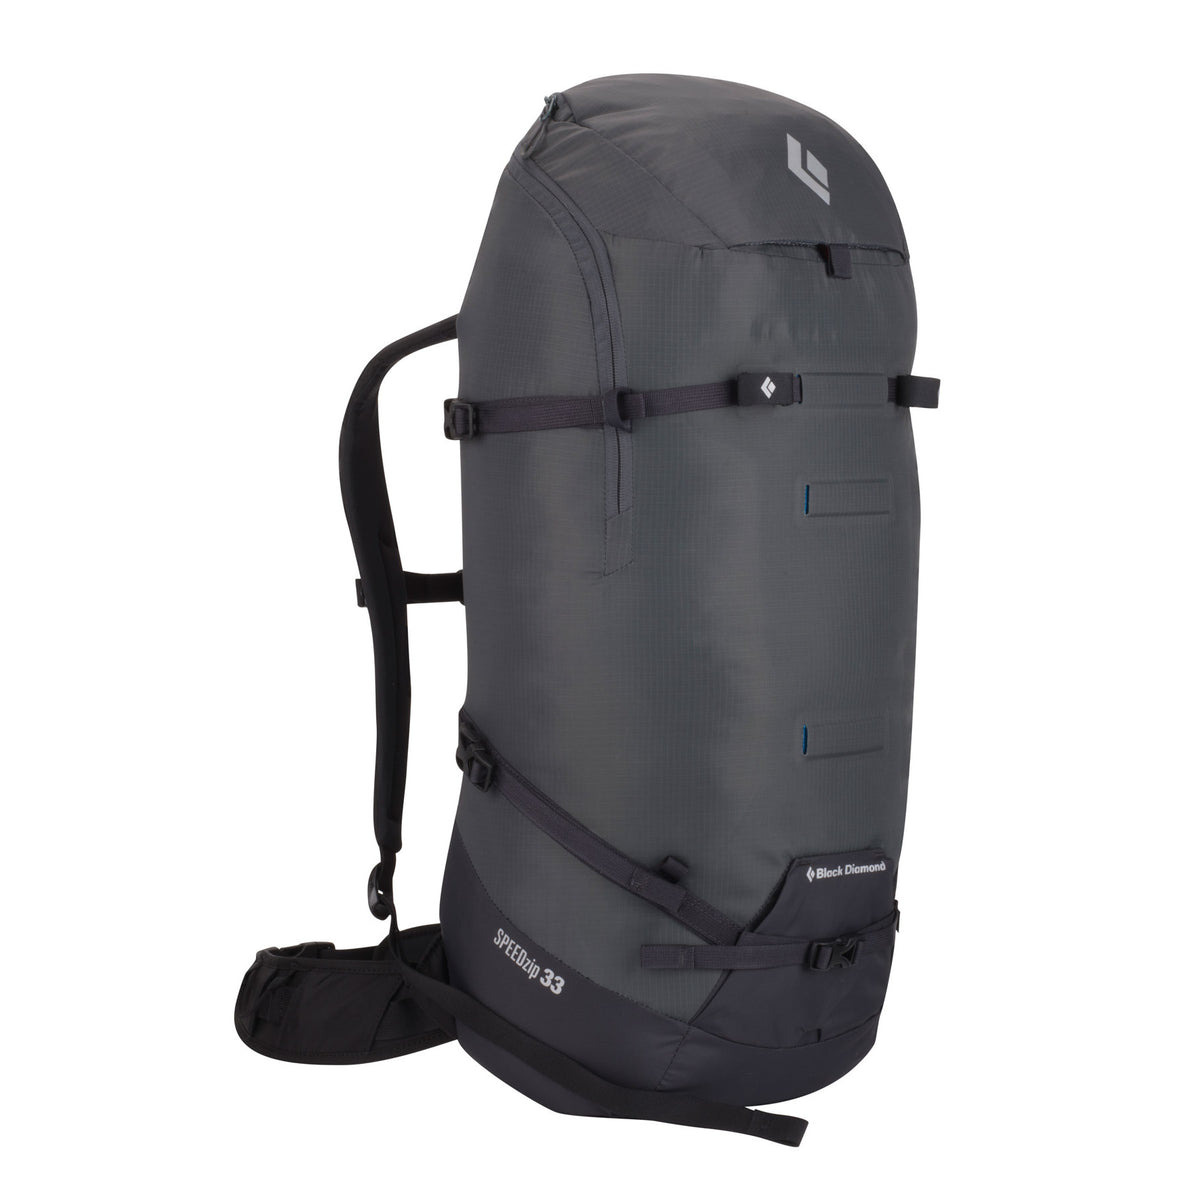 Black Diamond Speed Zip 33 backpack, front/side view in grey and black colours